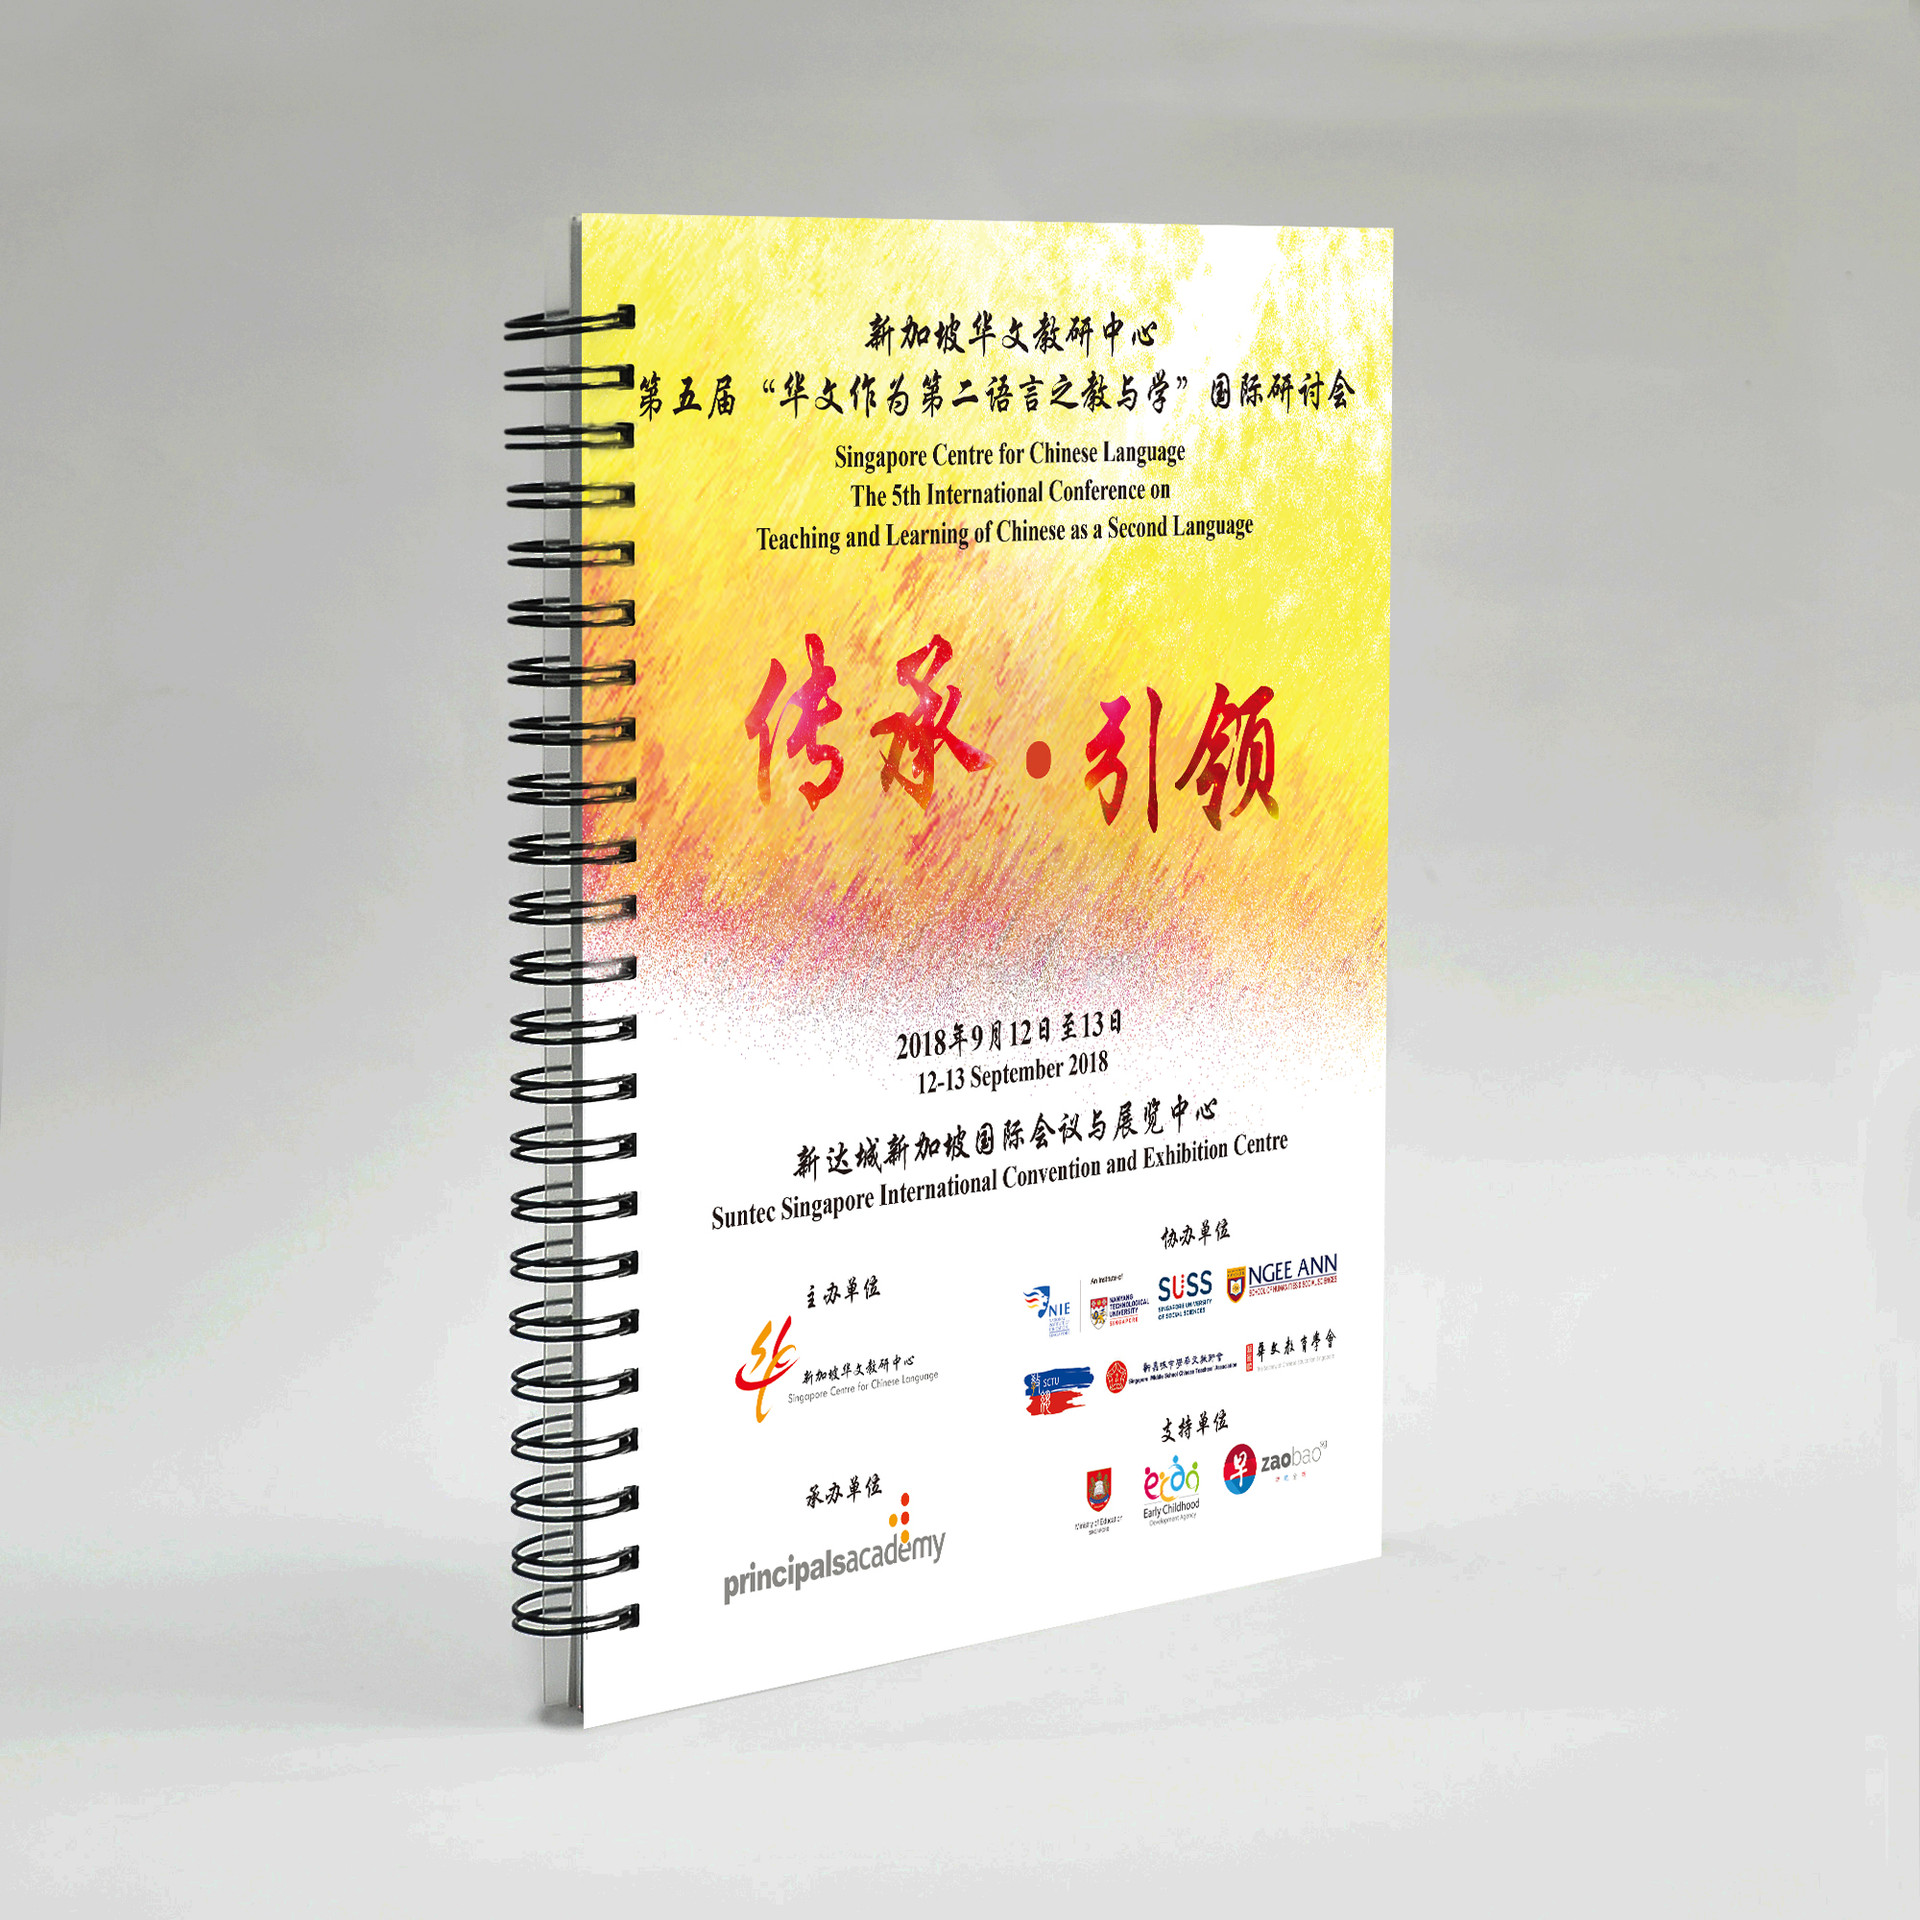 PA Event Programme Booklet Cover